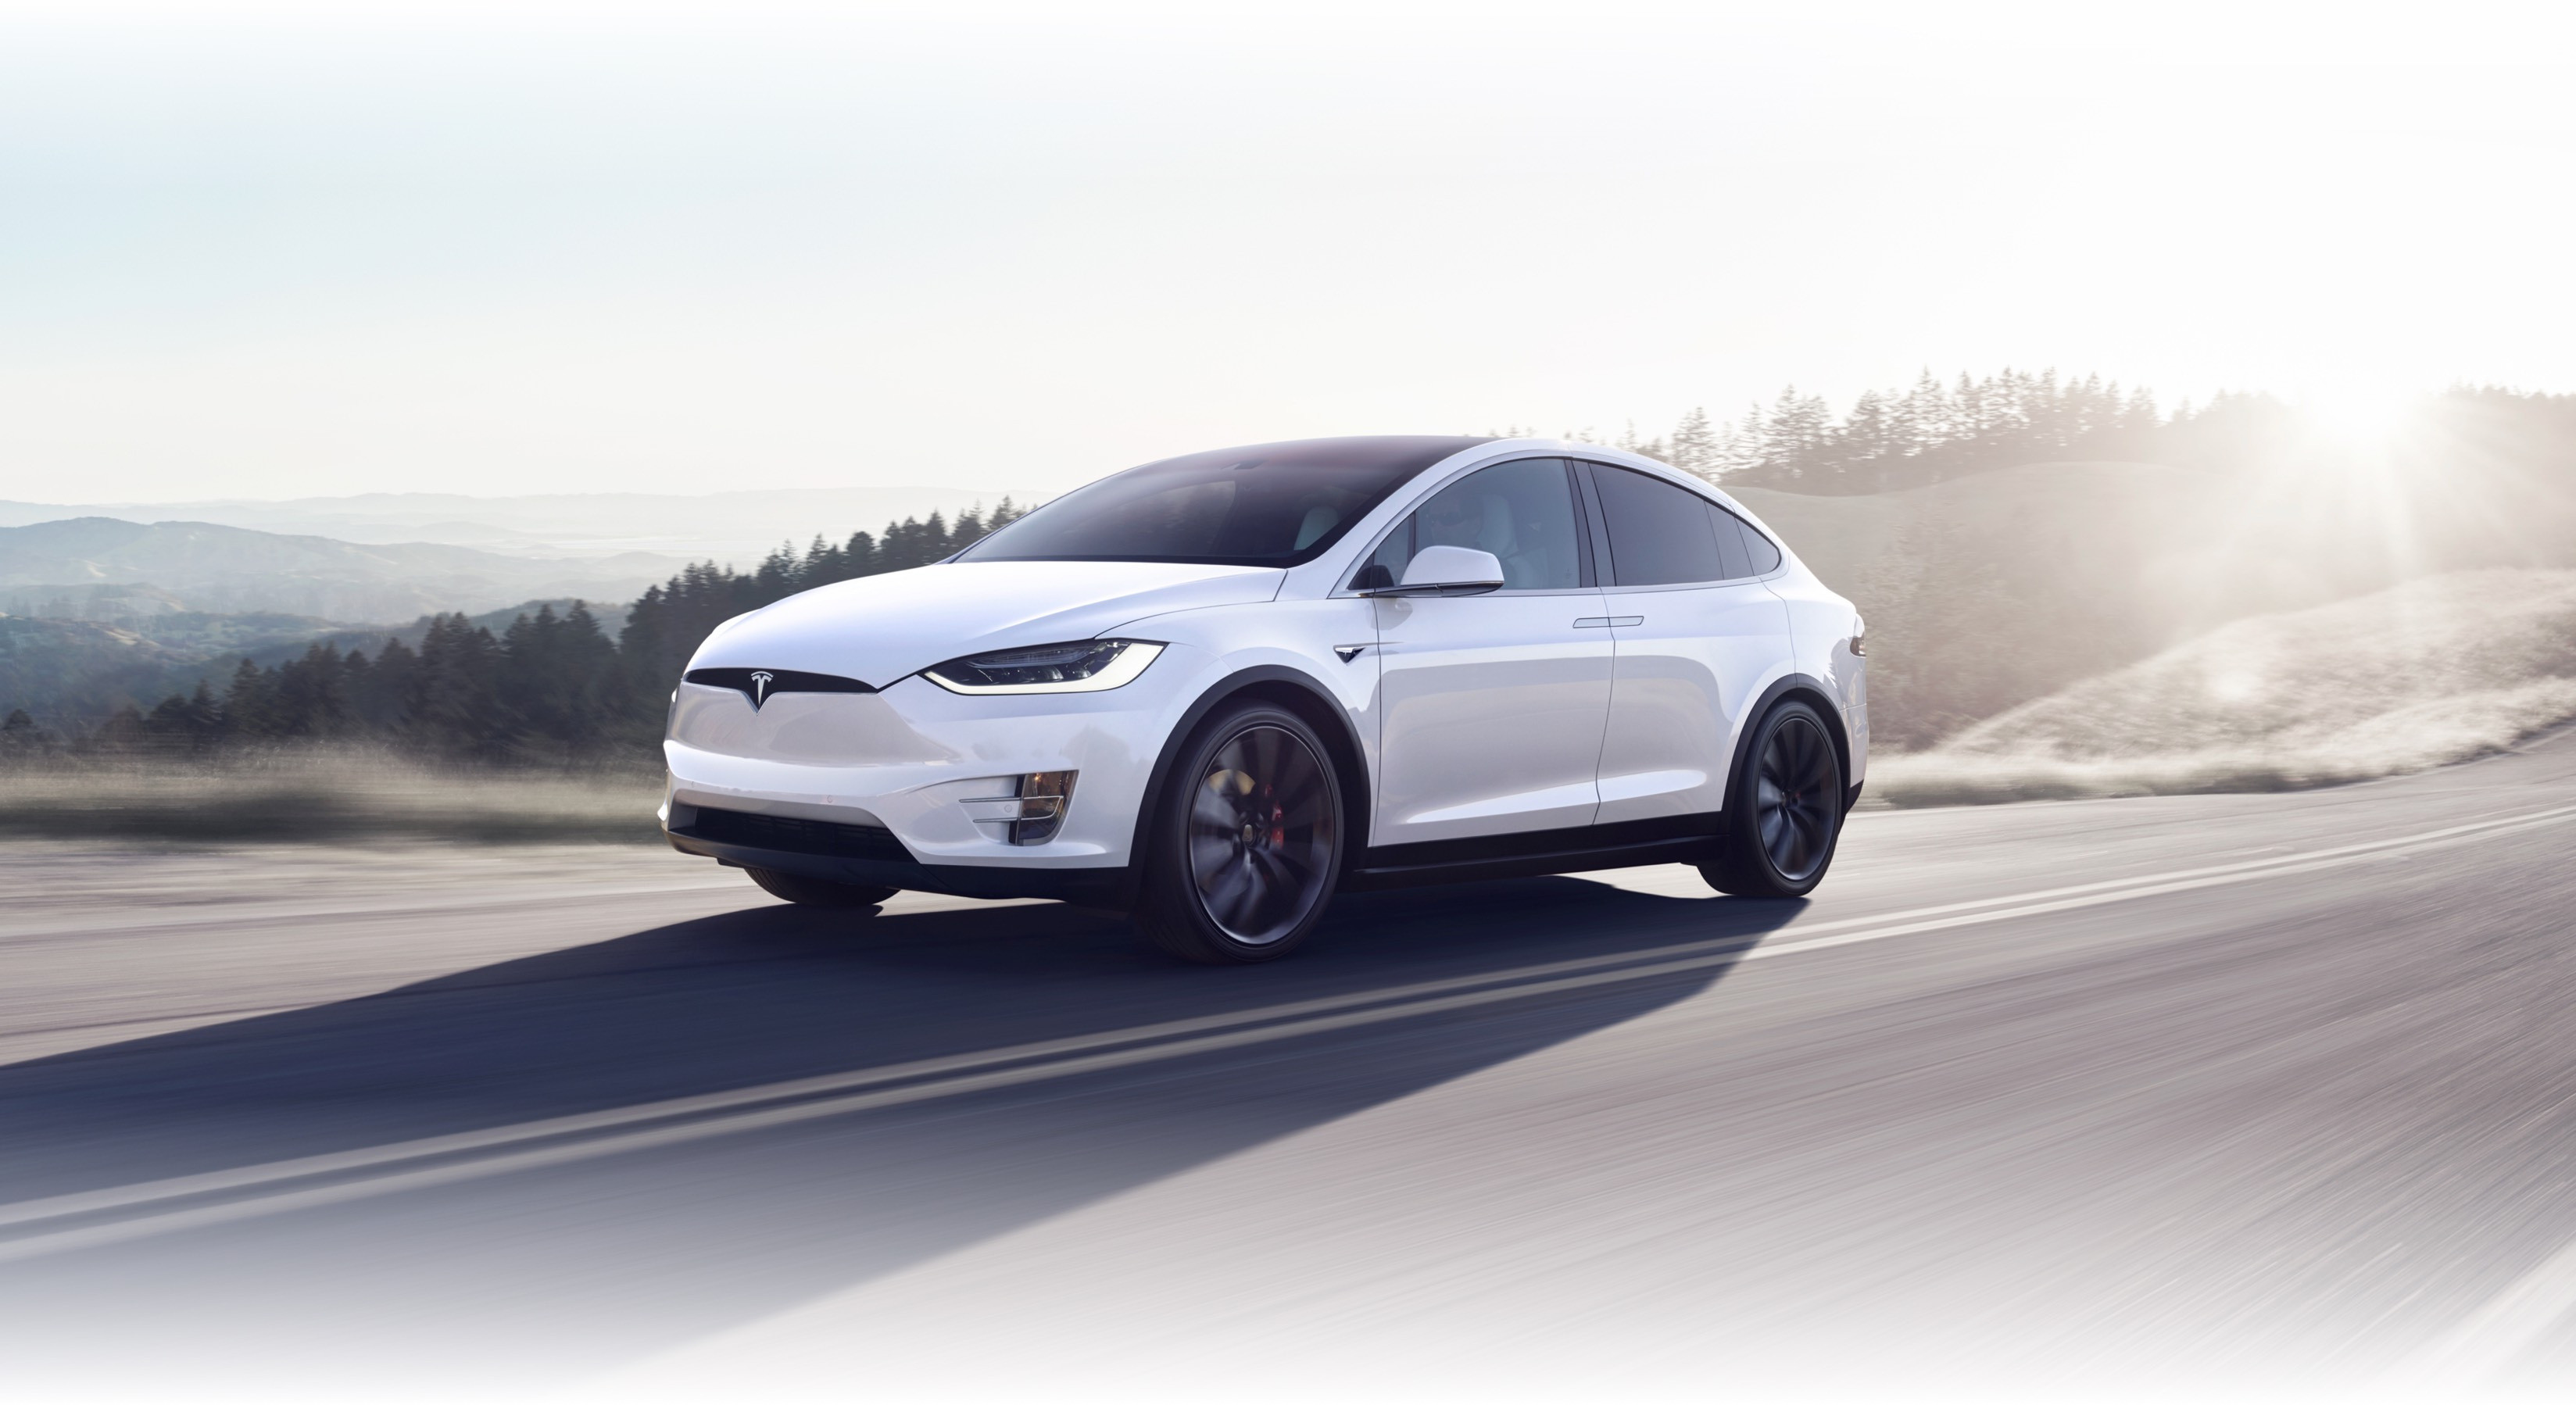 Pearl white Model X navigating a mountainous road